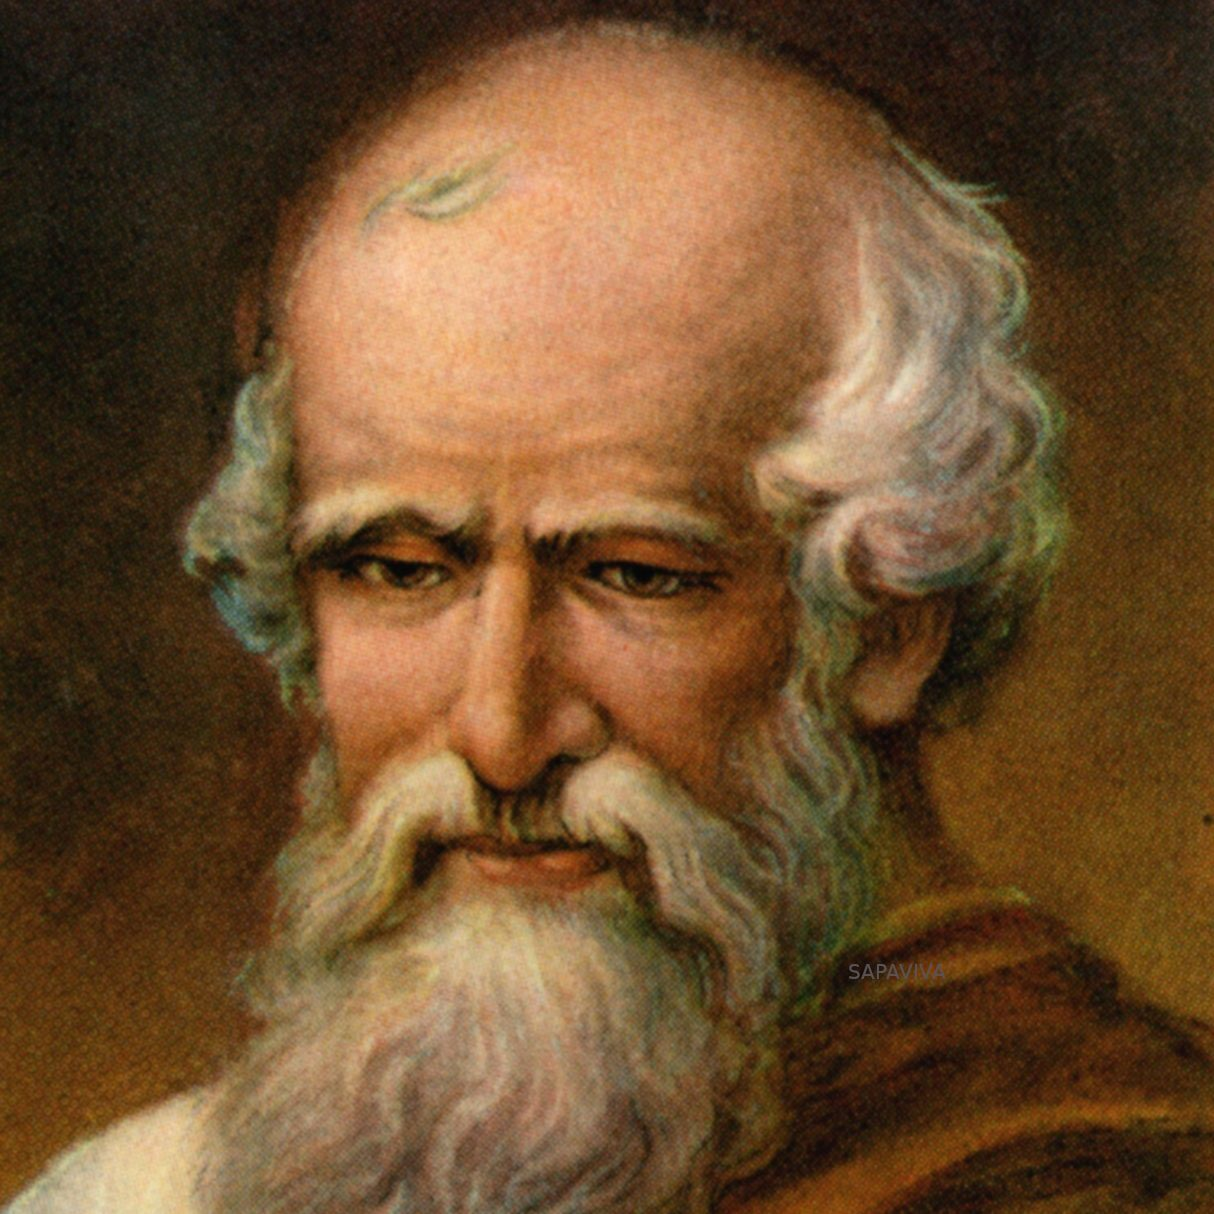 facts about archimedes interesting facts about archimedes archimedes fun facts archimedes facts for kids 10 facts about archimedes archimedes archimedes principle archimedes of syracuse archimedes meaning archimedes palimpsest archimedes lever about archimedes archimedes constant principle of buoyancy archimedes principle of buoyancy archimedes principle states that archimedes principle for kids the sand reckoner archimedes scientist archimedes principle example archimedes codex archimedes buoyancy archimedes cup the archimedes principle archimedes for kids archimedes water displacement archimedes mathematician buoyancy and archimedes principle archimedes last words archimedes invention archimedes history archimedes displacement archimedes principle in malayalam the archimedes codex archimedes water screw archimedes q porter arkmidis principle archimed sas archimedes syracuse quadrature of the parabola archimedes engineering archimedes life archimedes phidias archimedes philosophy archimedes meaning in urdu syracuse archimedes archimedes principle meaning archimedes discovery archimedes principle in english about archimedes principle archimedes principle in telugu archimedes geometry about archimedes in english archimedes famous for archimedes principle physics archimedes early life according to archimedes principle archimedes gold archimedes science archimedes greek archimedes principle in urdu archimedes matter greek mathematician archimedes archimedes physics archimedes maths archimedes principle history archimedes in tamil archimedes greek god archimedes principle in bengali archimedes works archimedes principle khan academy archimedes matter in english star citizen p72 archimedes known for archimedes in english archimedes effect archimedes english archimedes principle of displacement archimedes water archimedes died archimedes principle simplified archimedes screw history archimedes lever principle archimedes principle for dummies the principle of archimedes ar